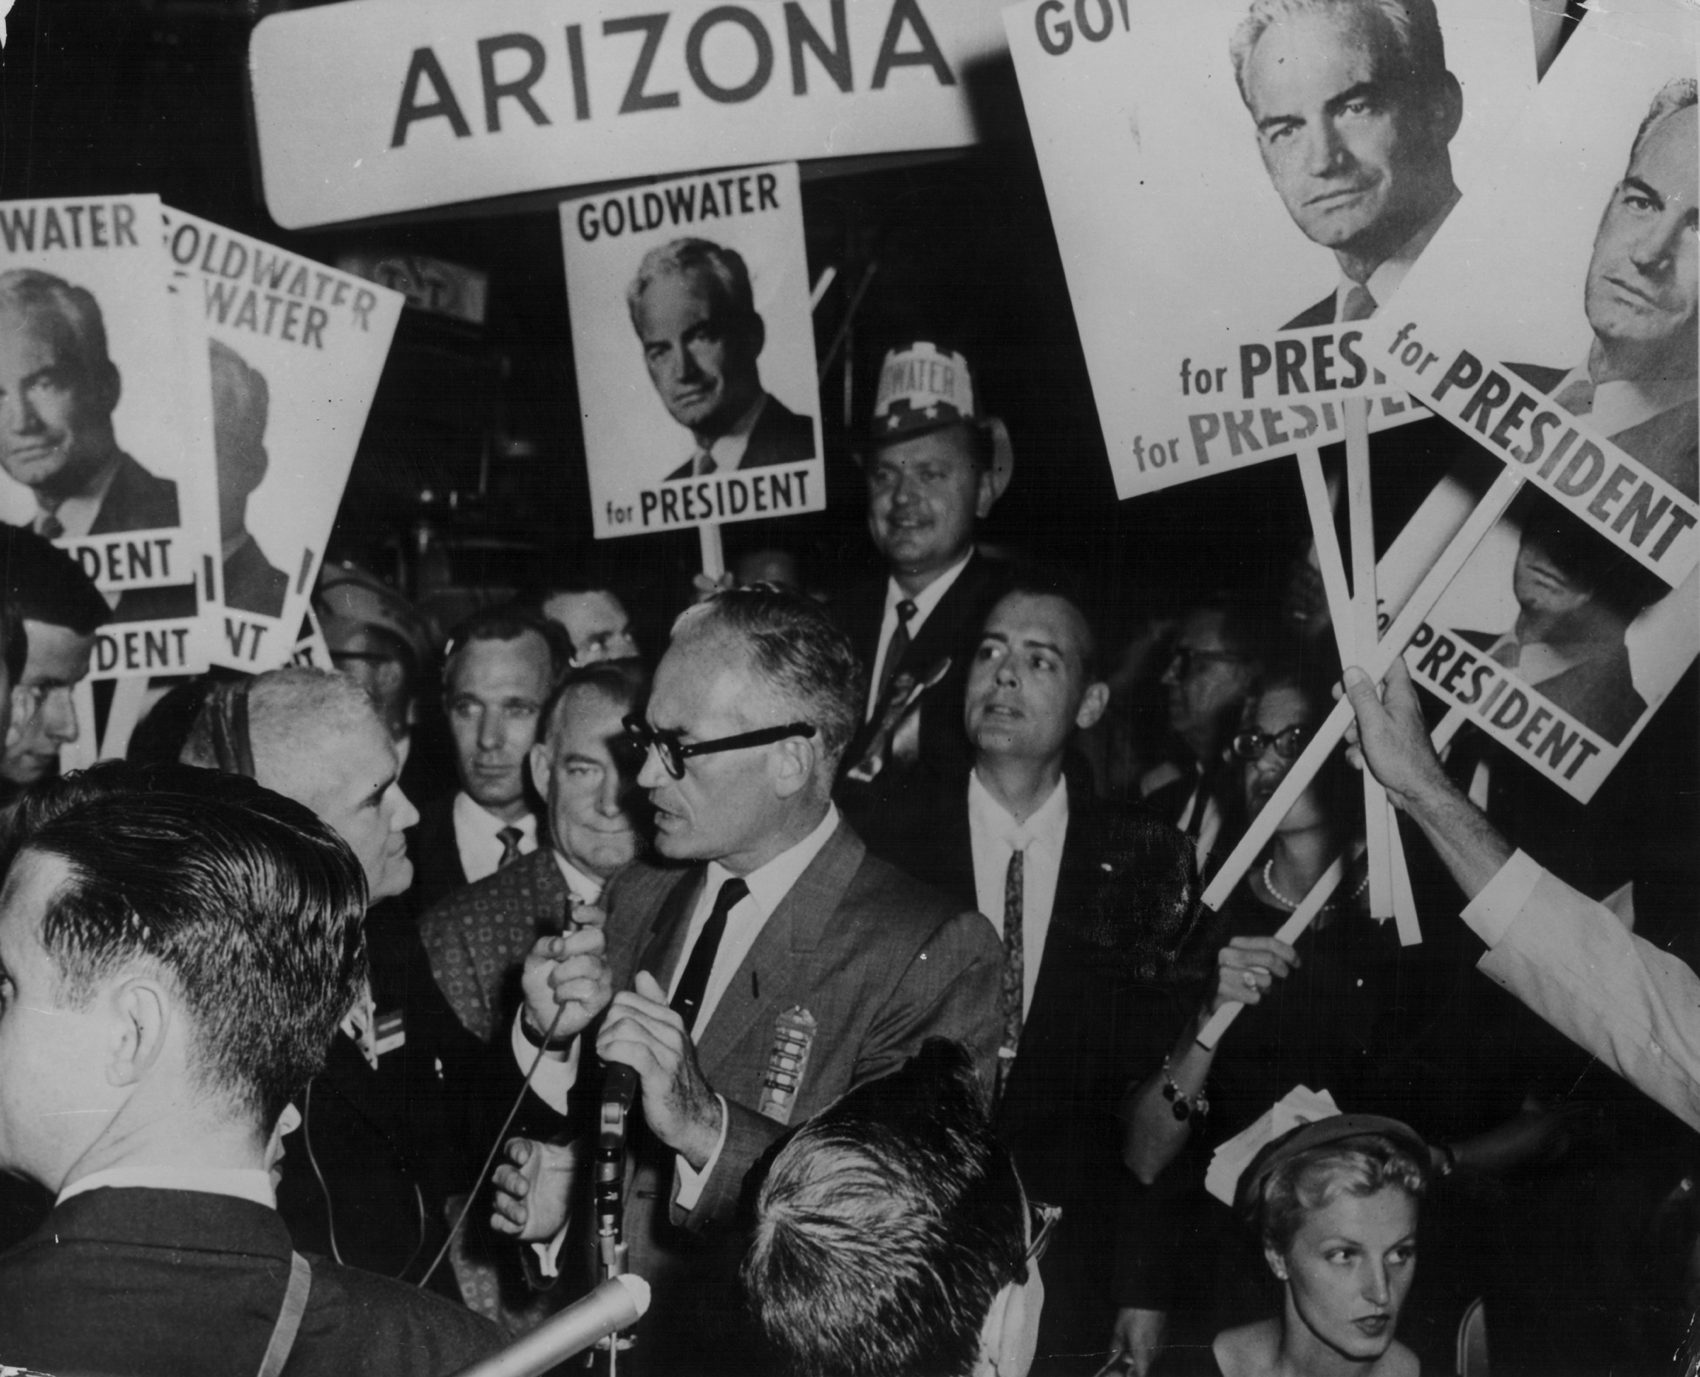 Senator Barry Goldwater, surrounded by his supporters as he campaigns for the Republican candidacy, 1952. (Keystone/Hulton Archive/Getty Images)